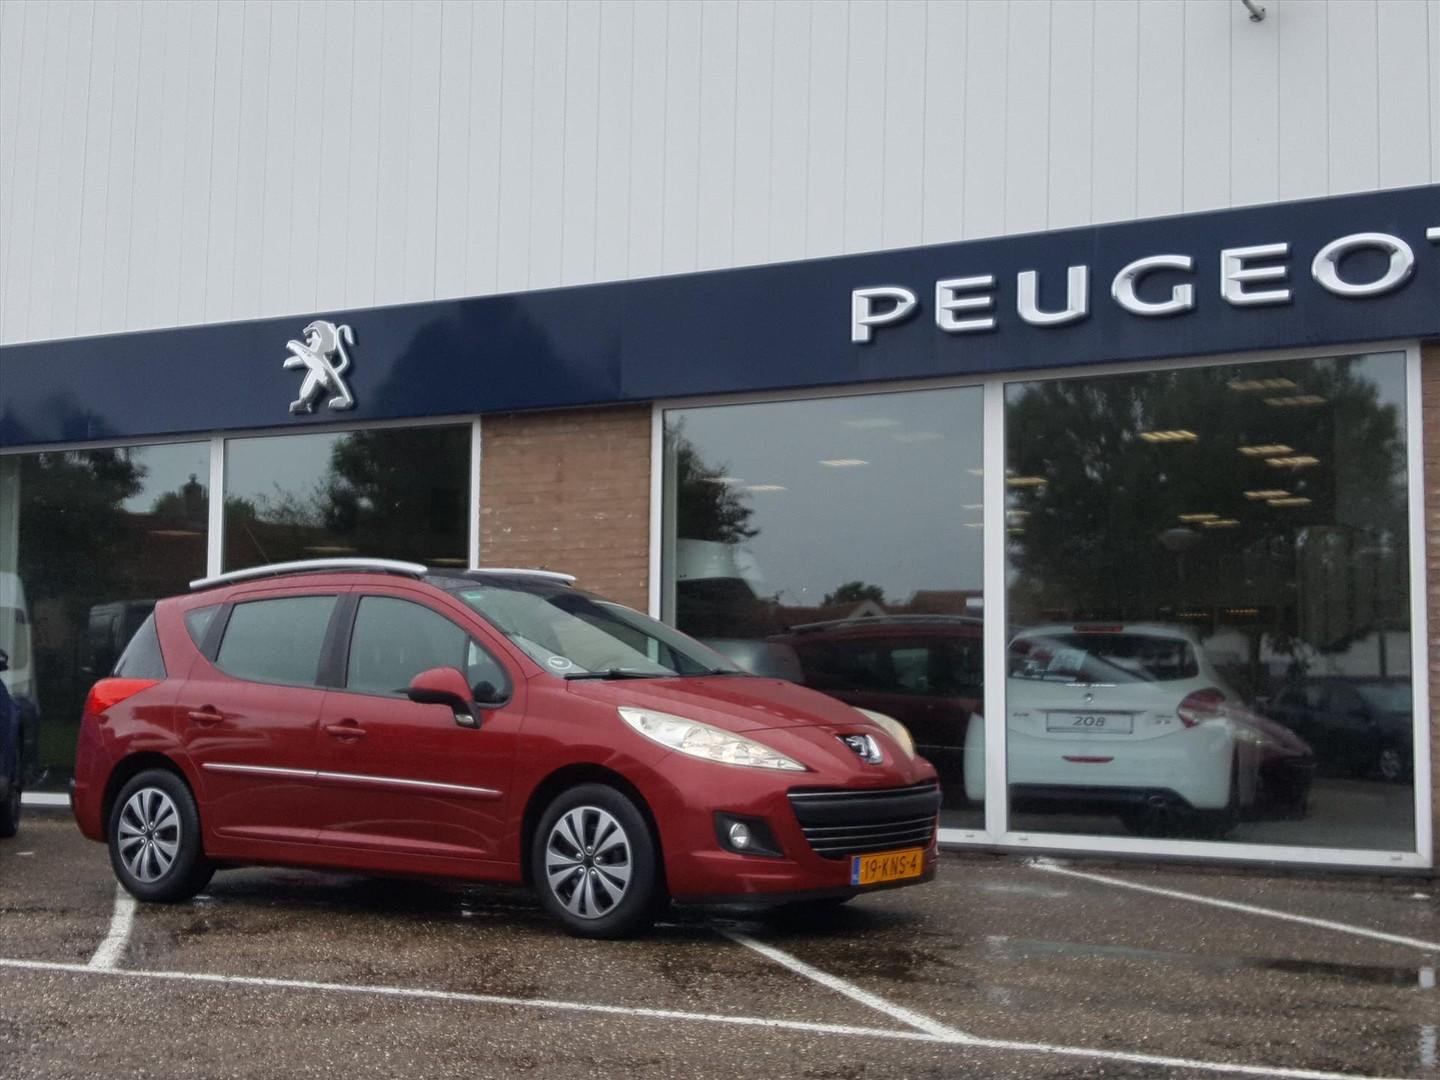 Peugeot 207 1.6 hdif 16v 80kw sw cruise/climate control trekhaak